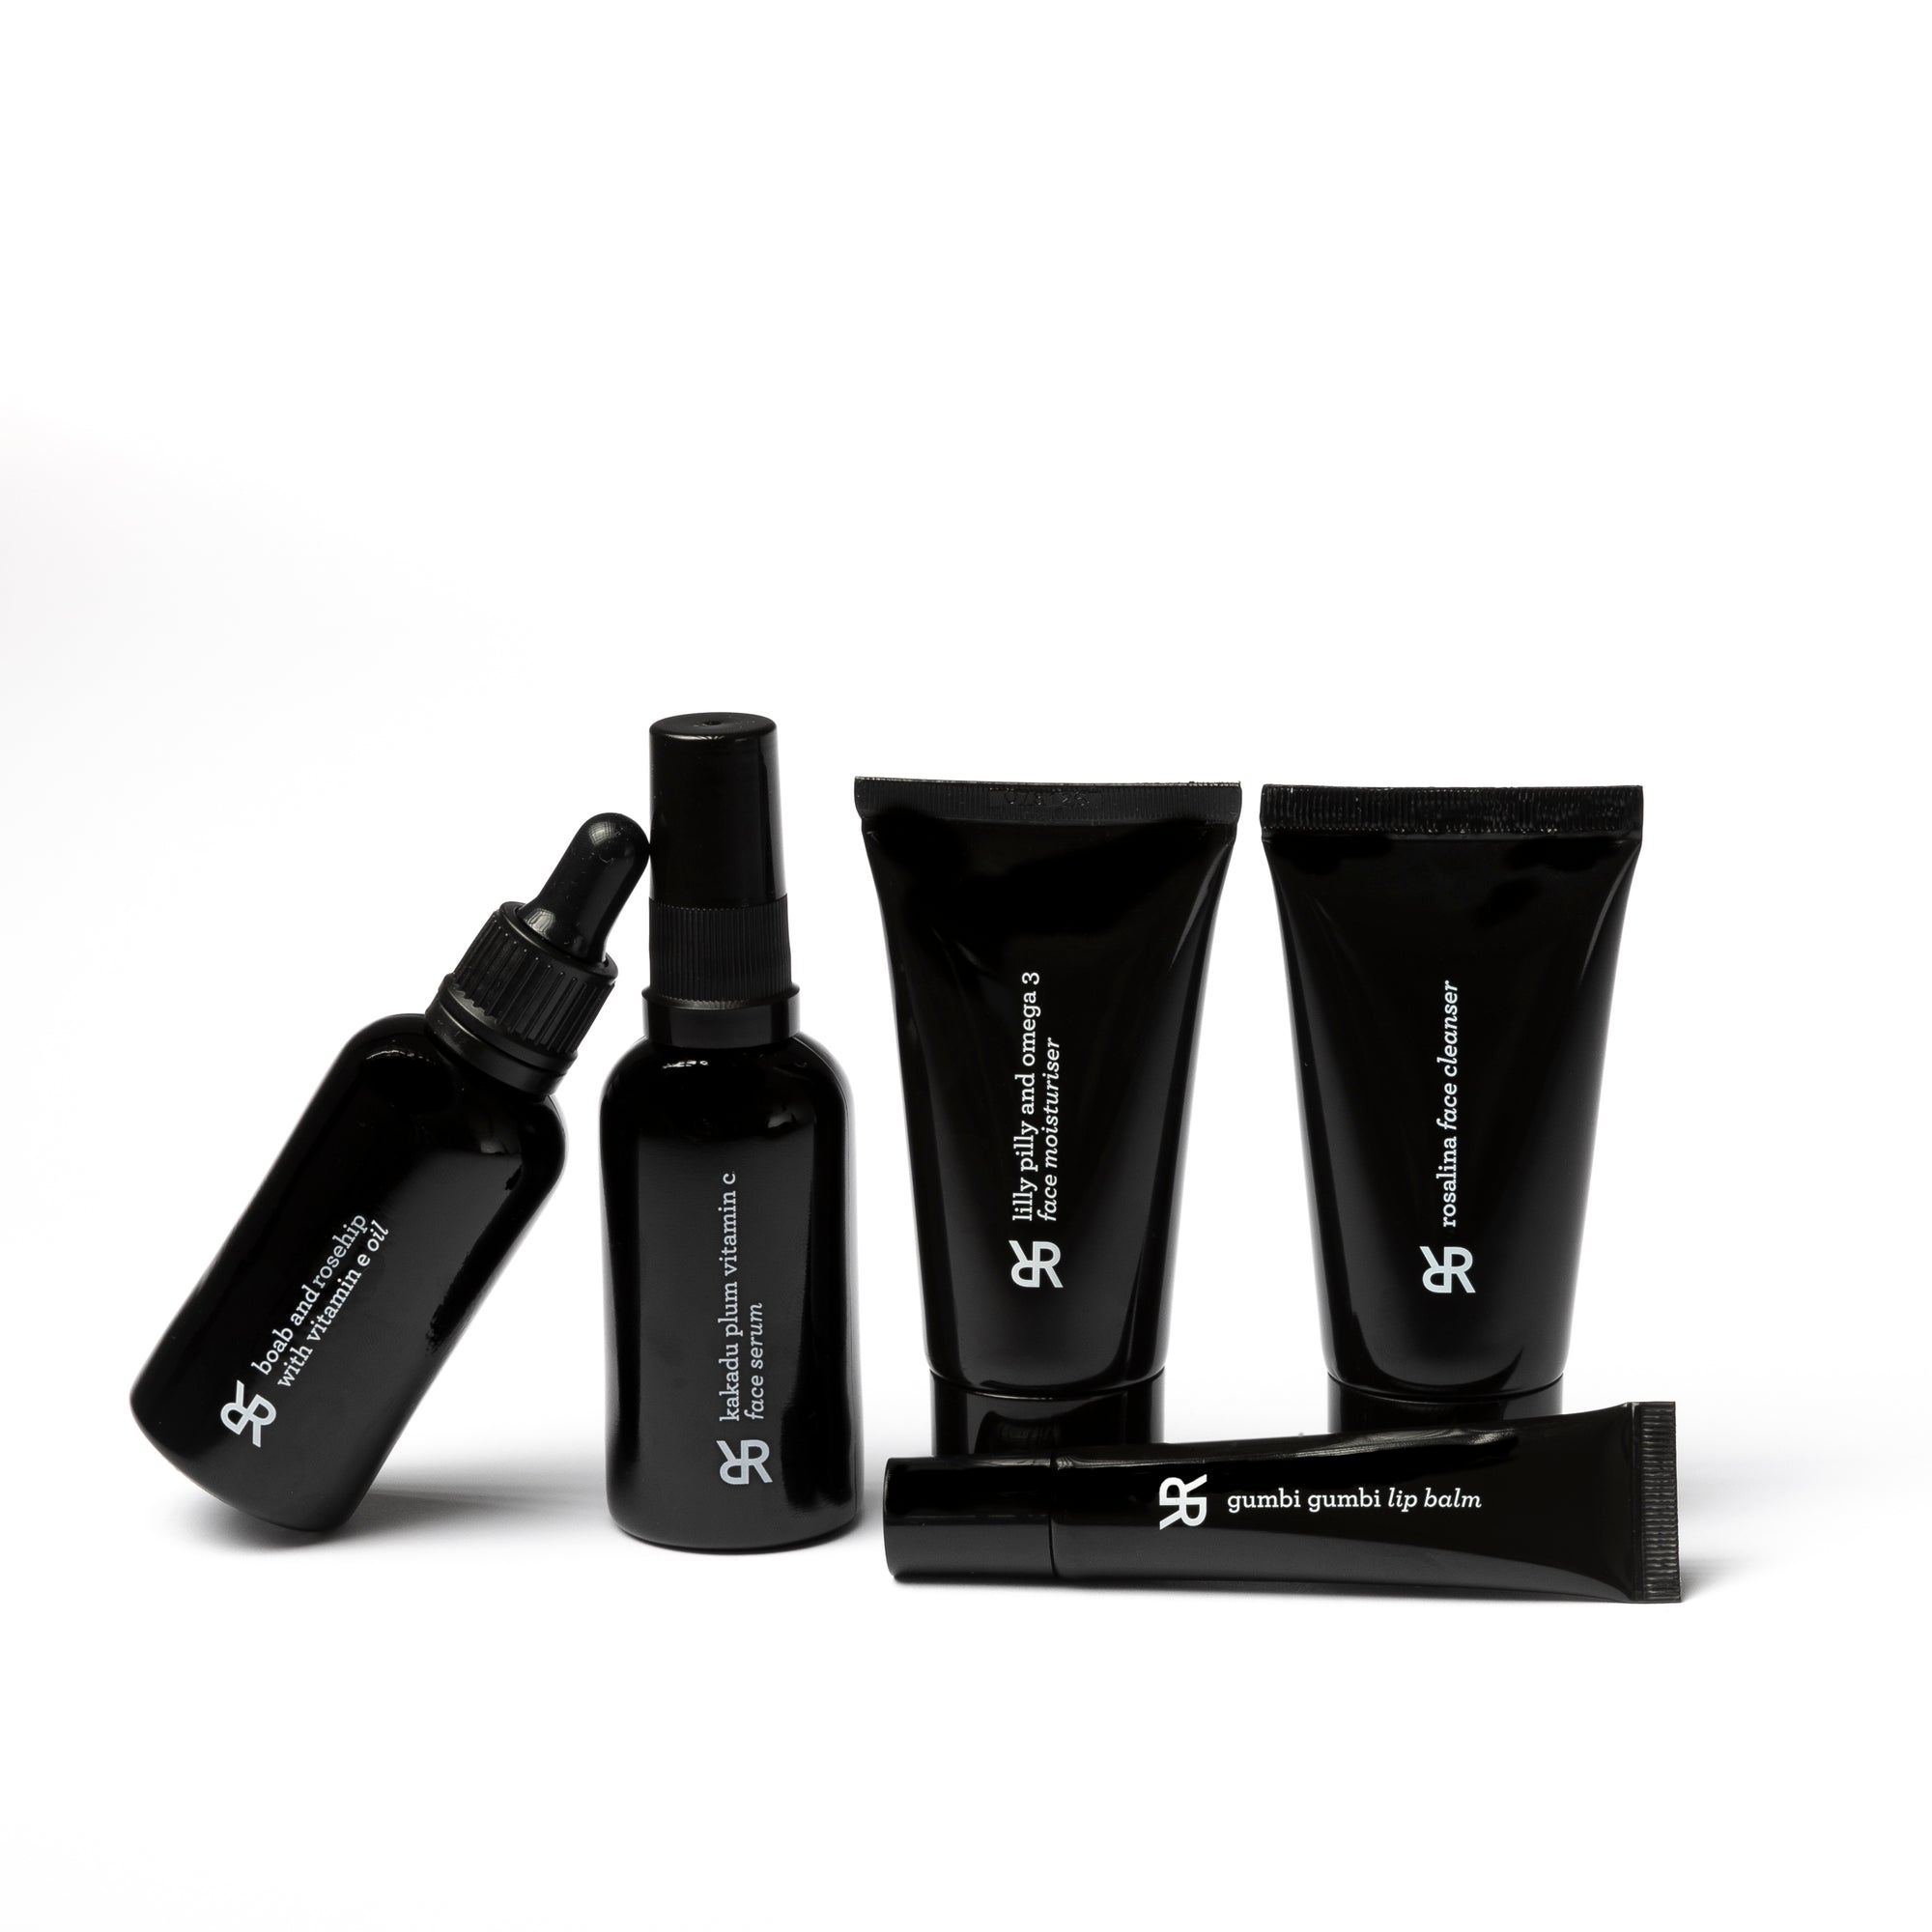 Rohr Remedy Skincare Set. Shop now at Skinbase Beauty.